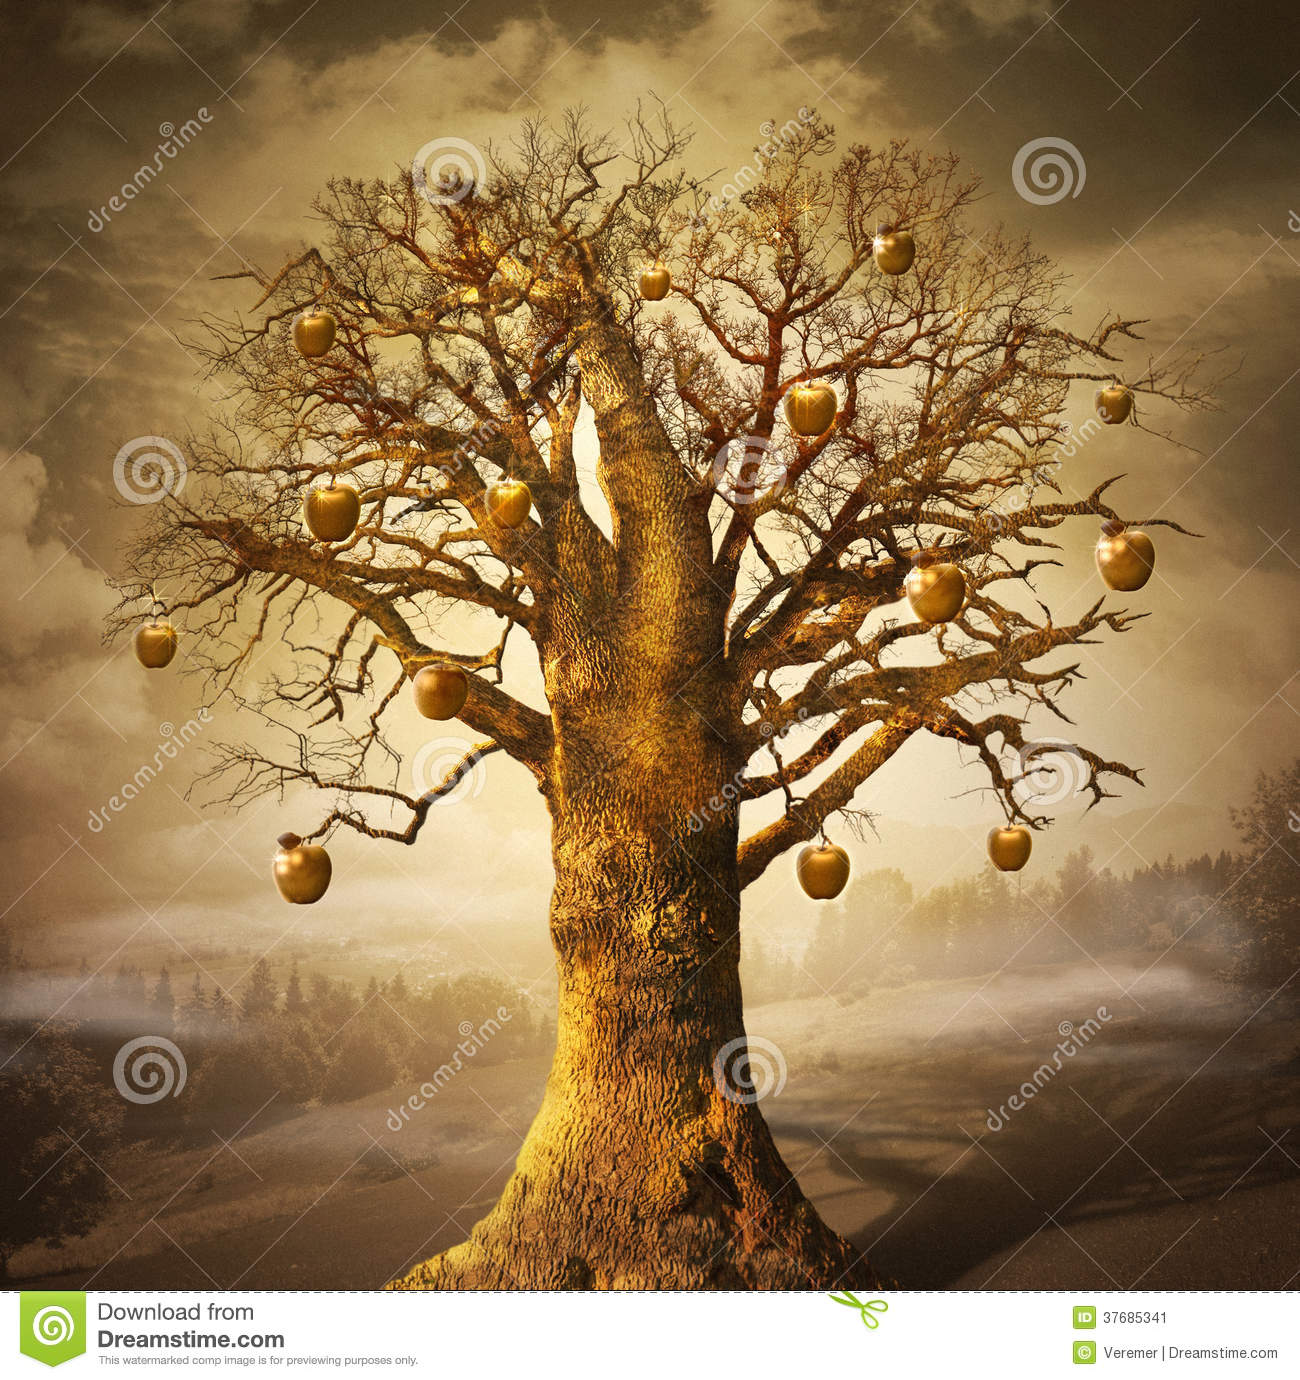 About Samothraki in addition Persepolis Gate also Moonrise Over Hopkins likewise 73957618852441148 additionally Stock Image Magic Tree Golden Apples Conceptual Digital Art Image37685341. on ruins on moon